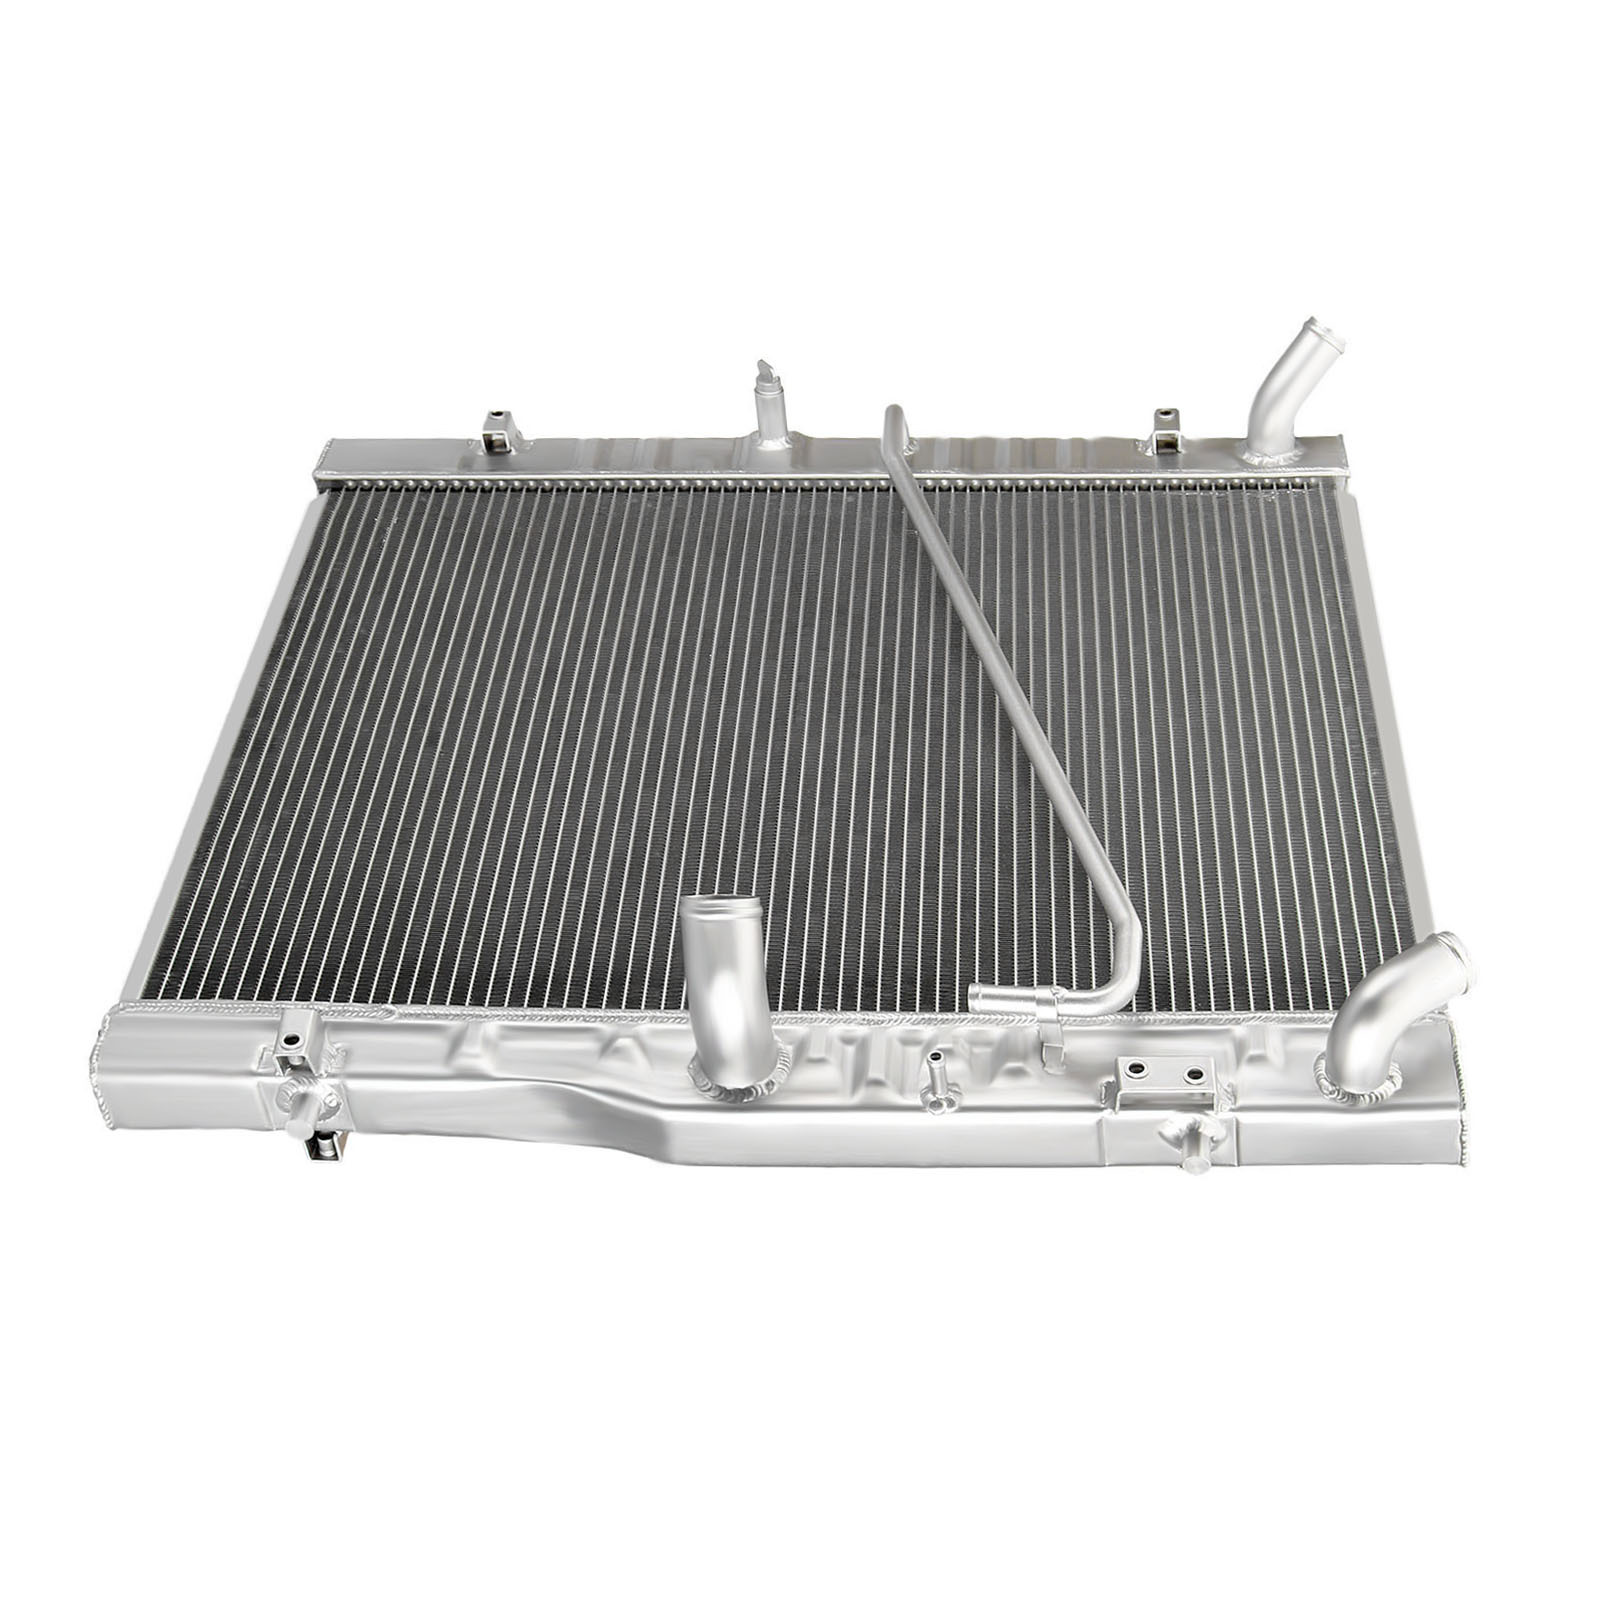 Full Aluminum Radiator for Toyota Hiace 5L 2005-2008 MT 2 Row Brand